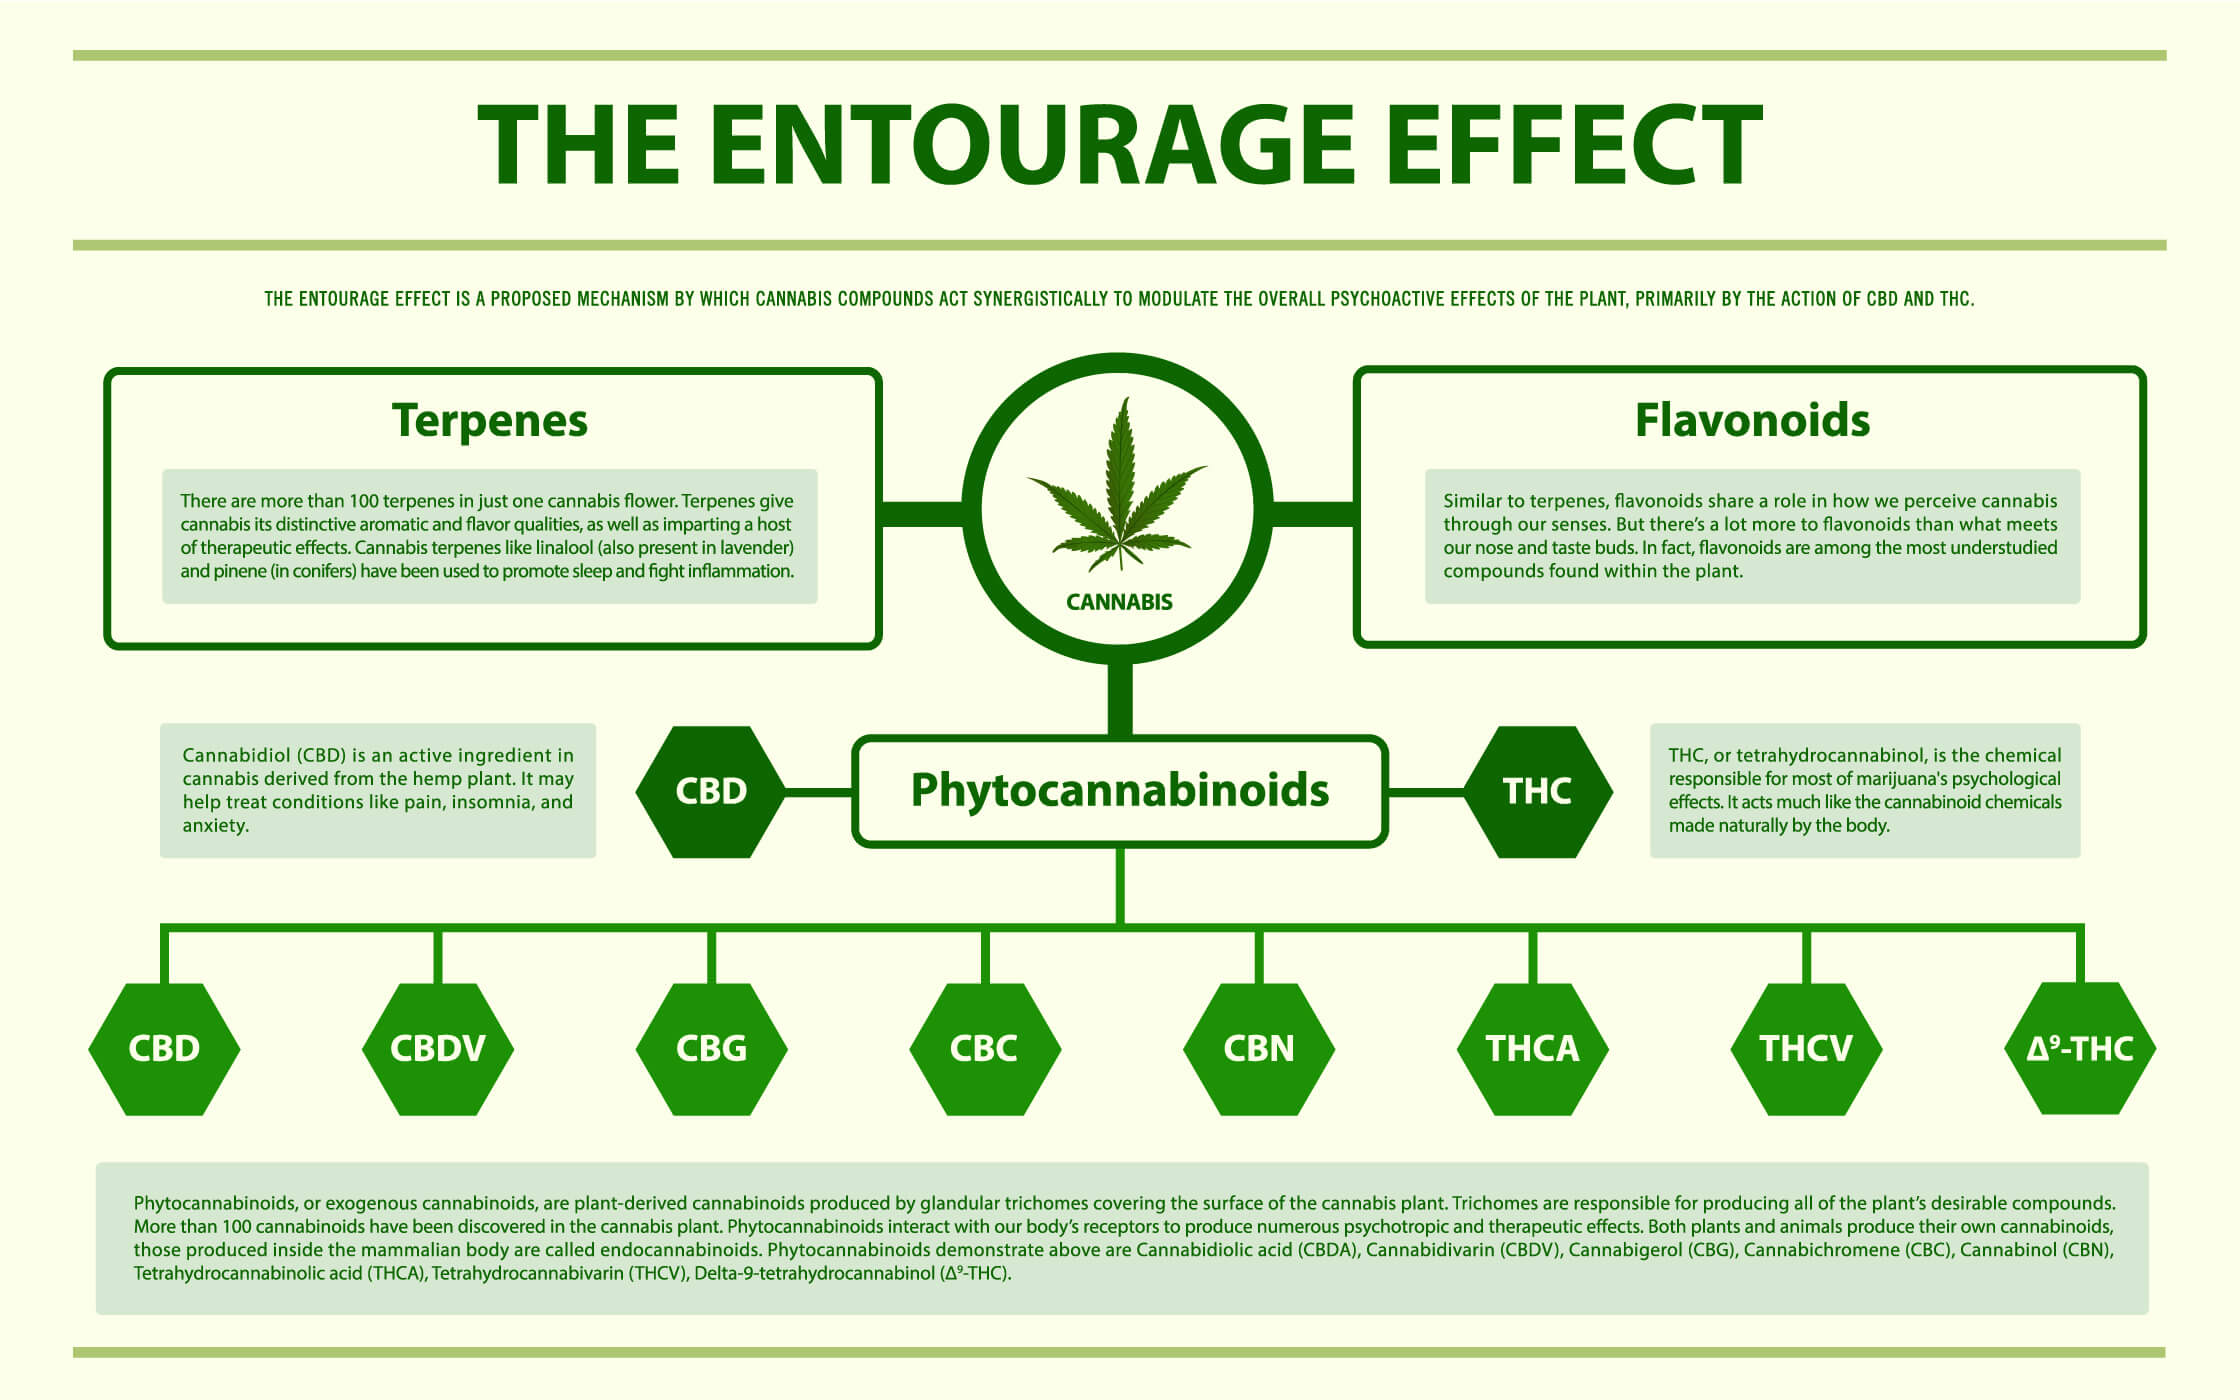 ENTOURAGE EFFECT CBD OIL